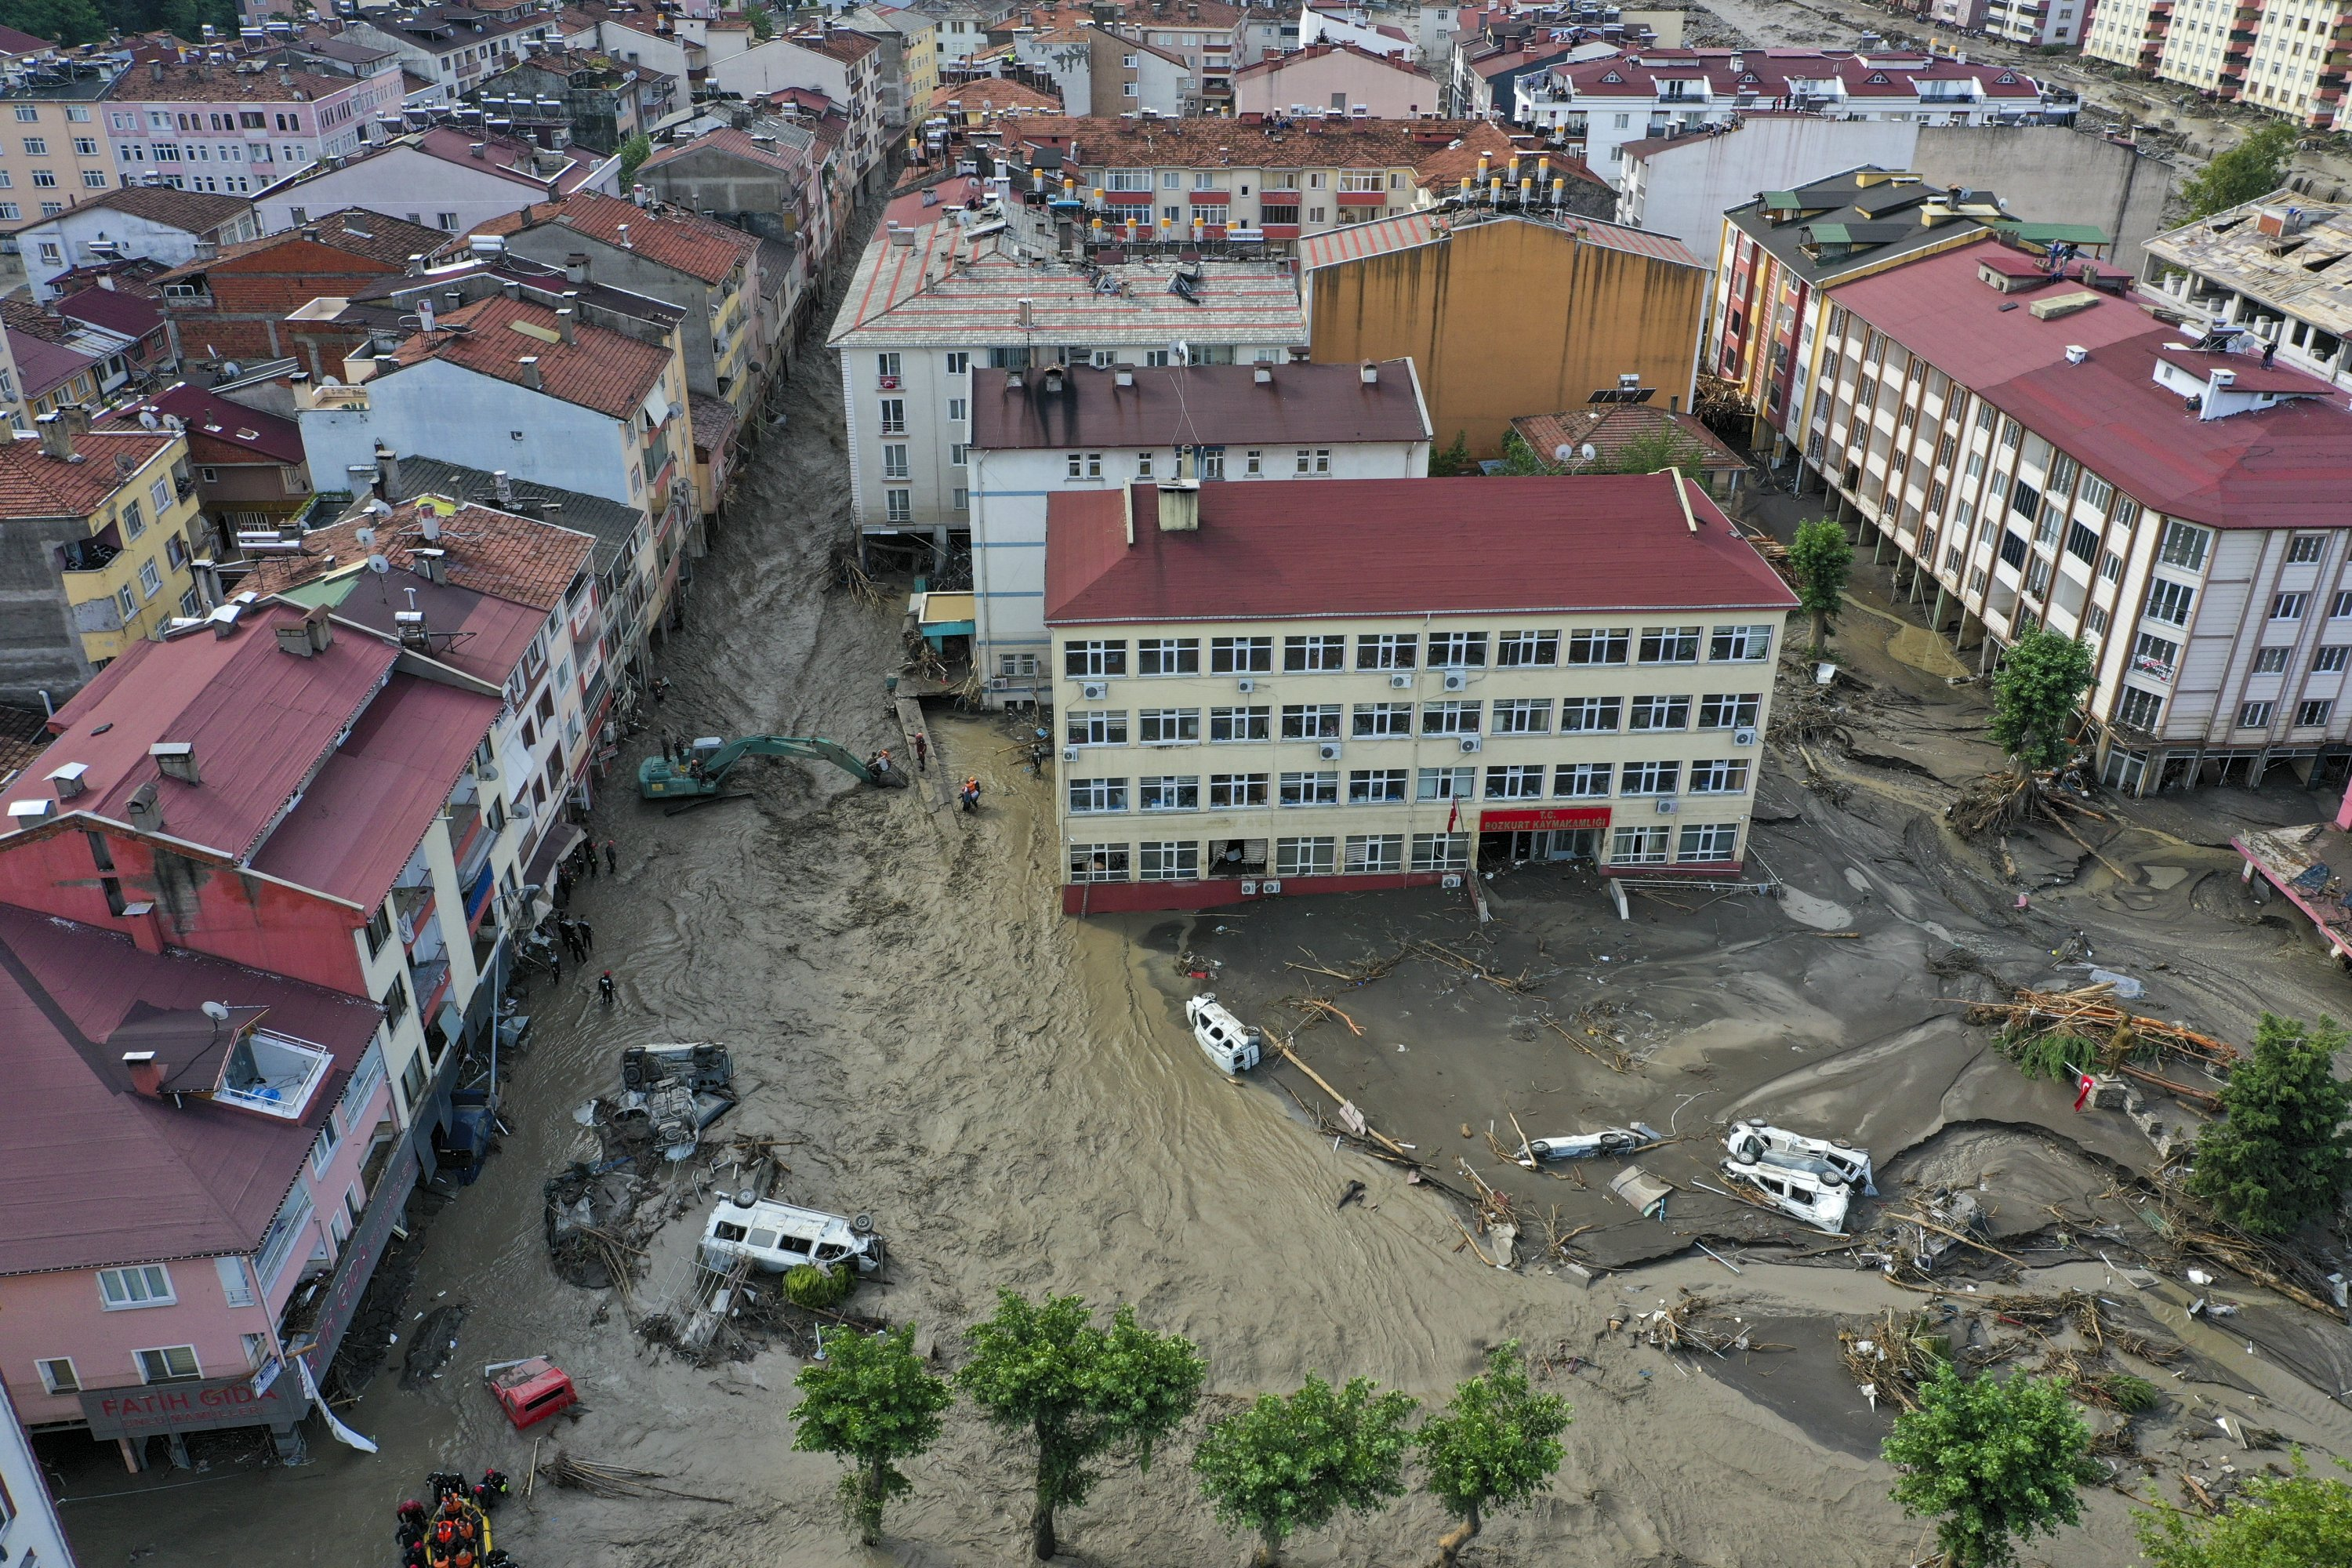 An aerial view of flooded streets strewn with debris and cars swept away by floods in the Bozkurt district of Kastamonu province, northern Turkey, Aug. 12, 2021. (AA PHOTO)